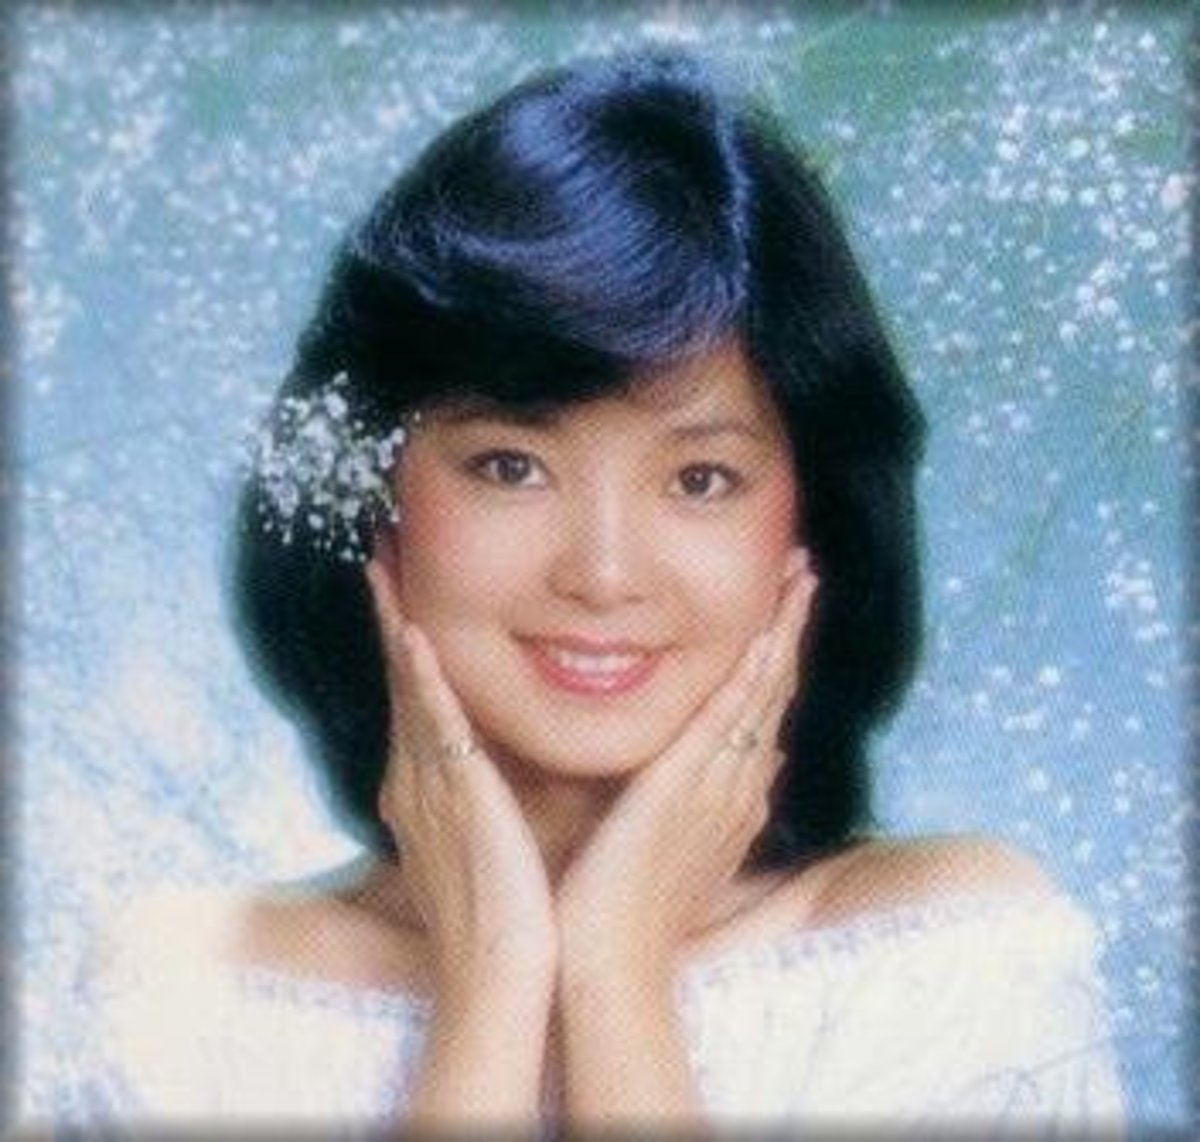 Teresa Teng, The Iconic Asian Singer